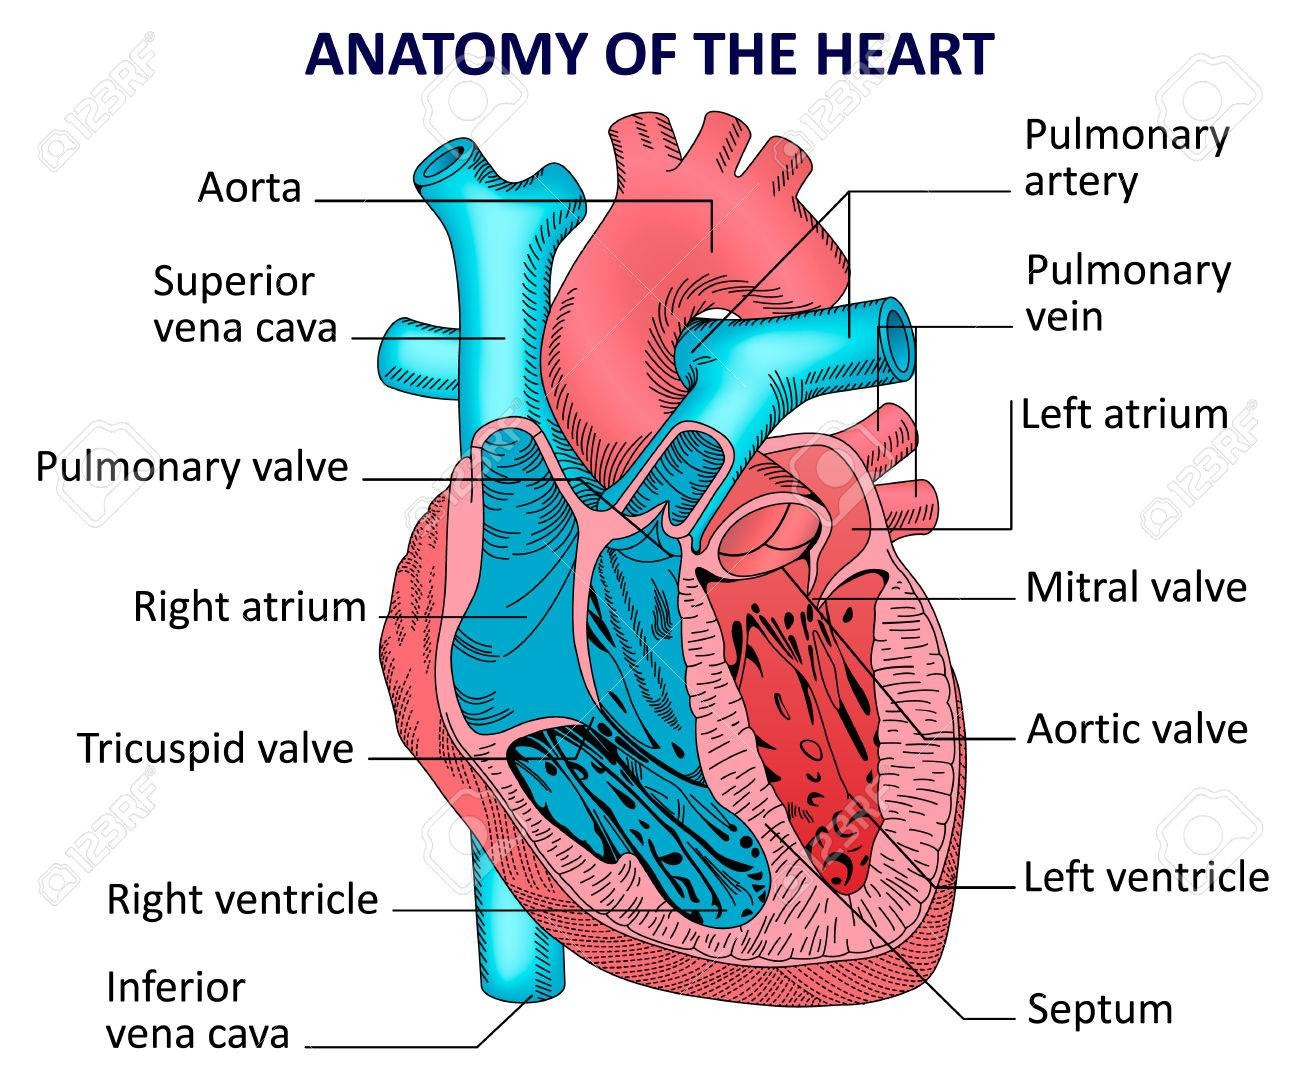 aortic valve and mitral valve location diagram  anatomy note